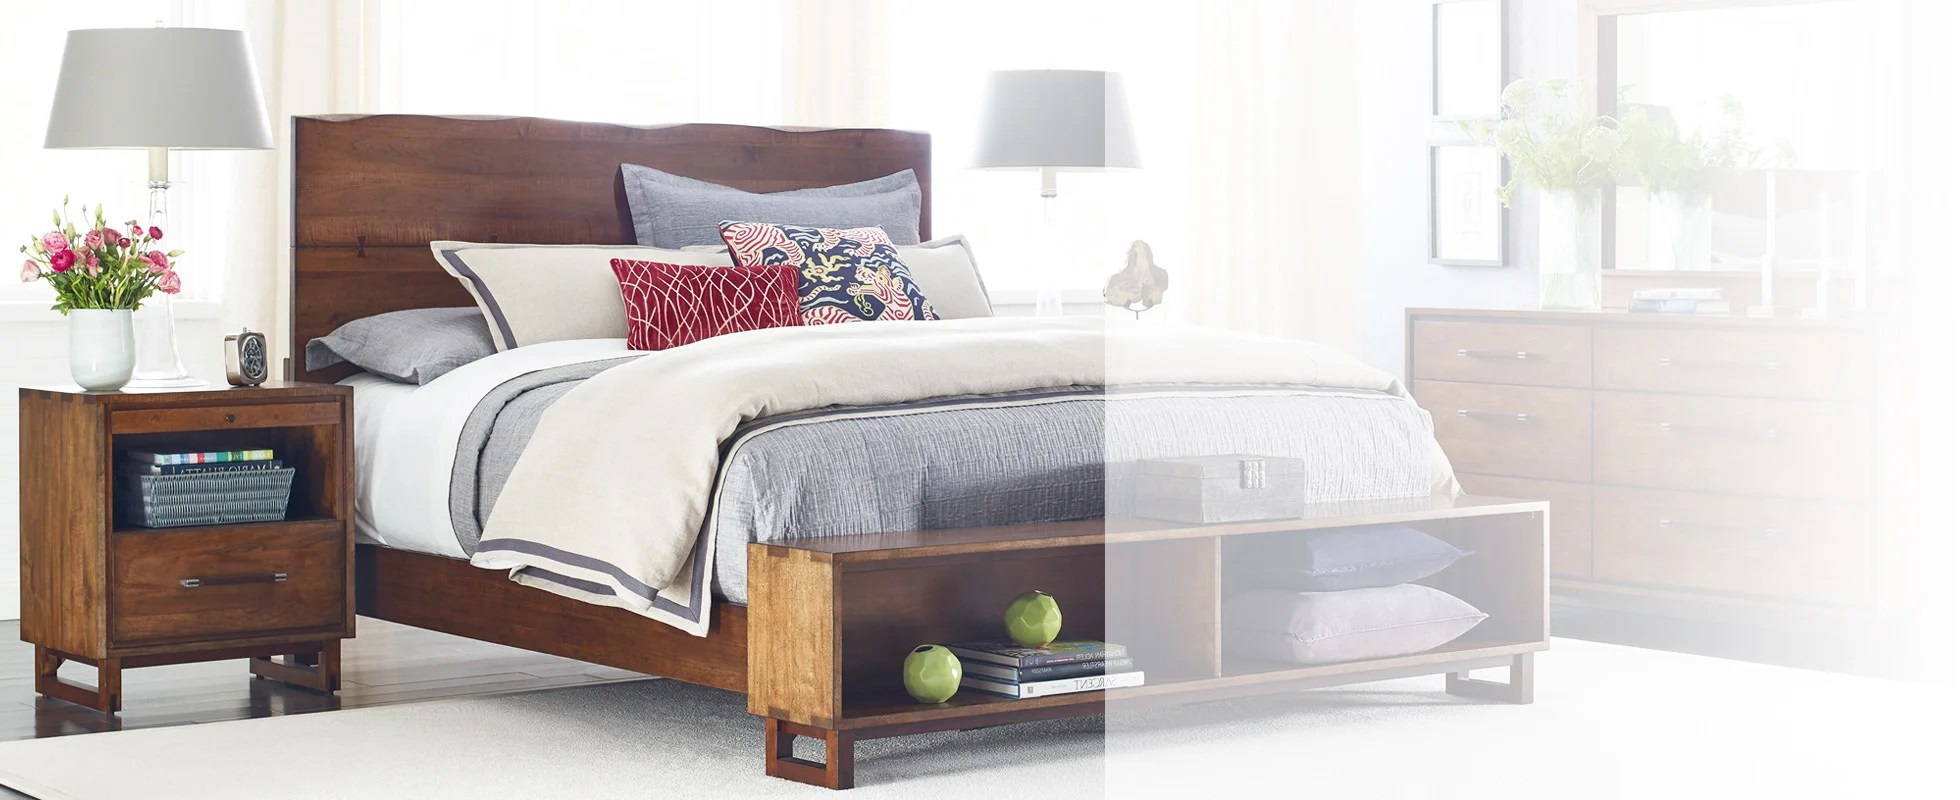 Z Beds For Adults Bedroom Furniture La Z Boy